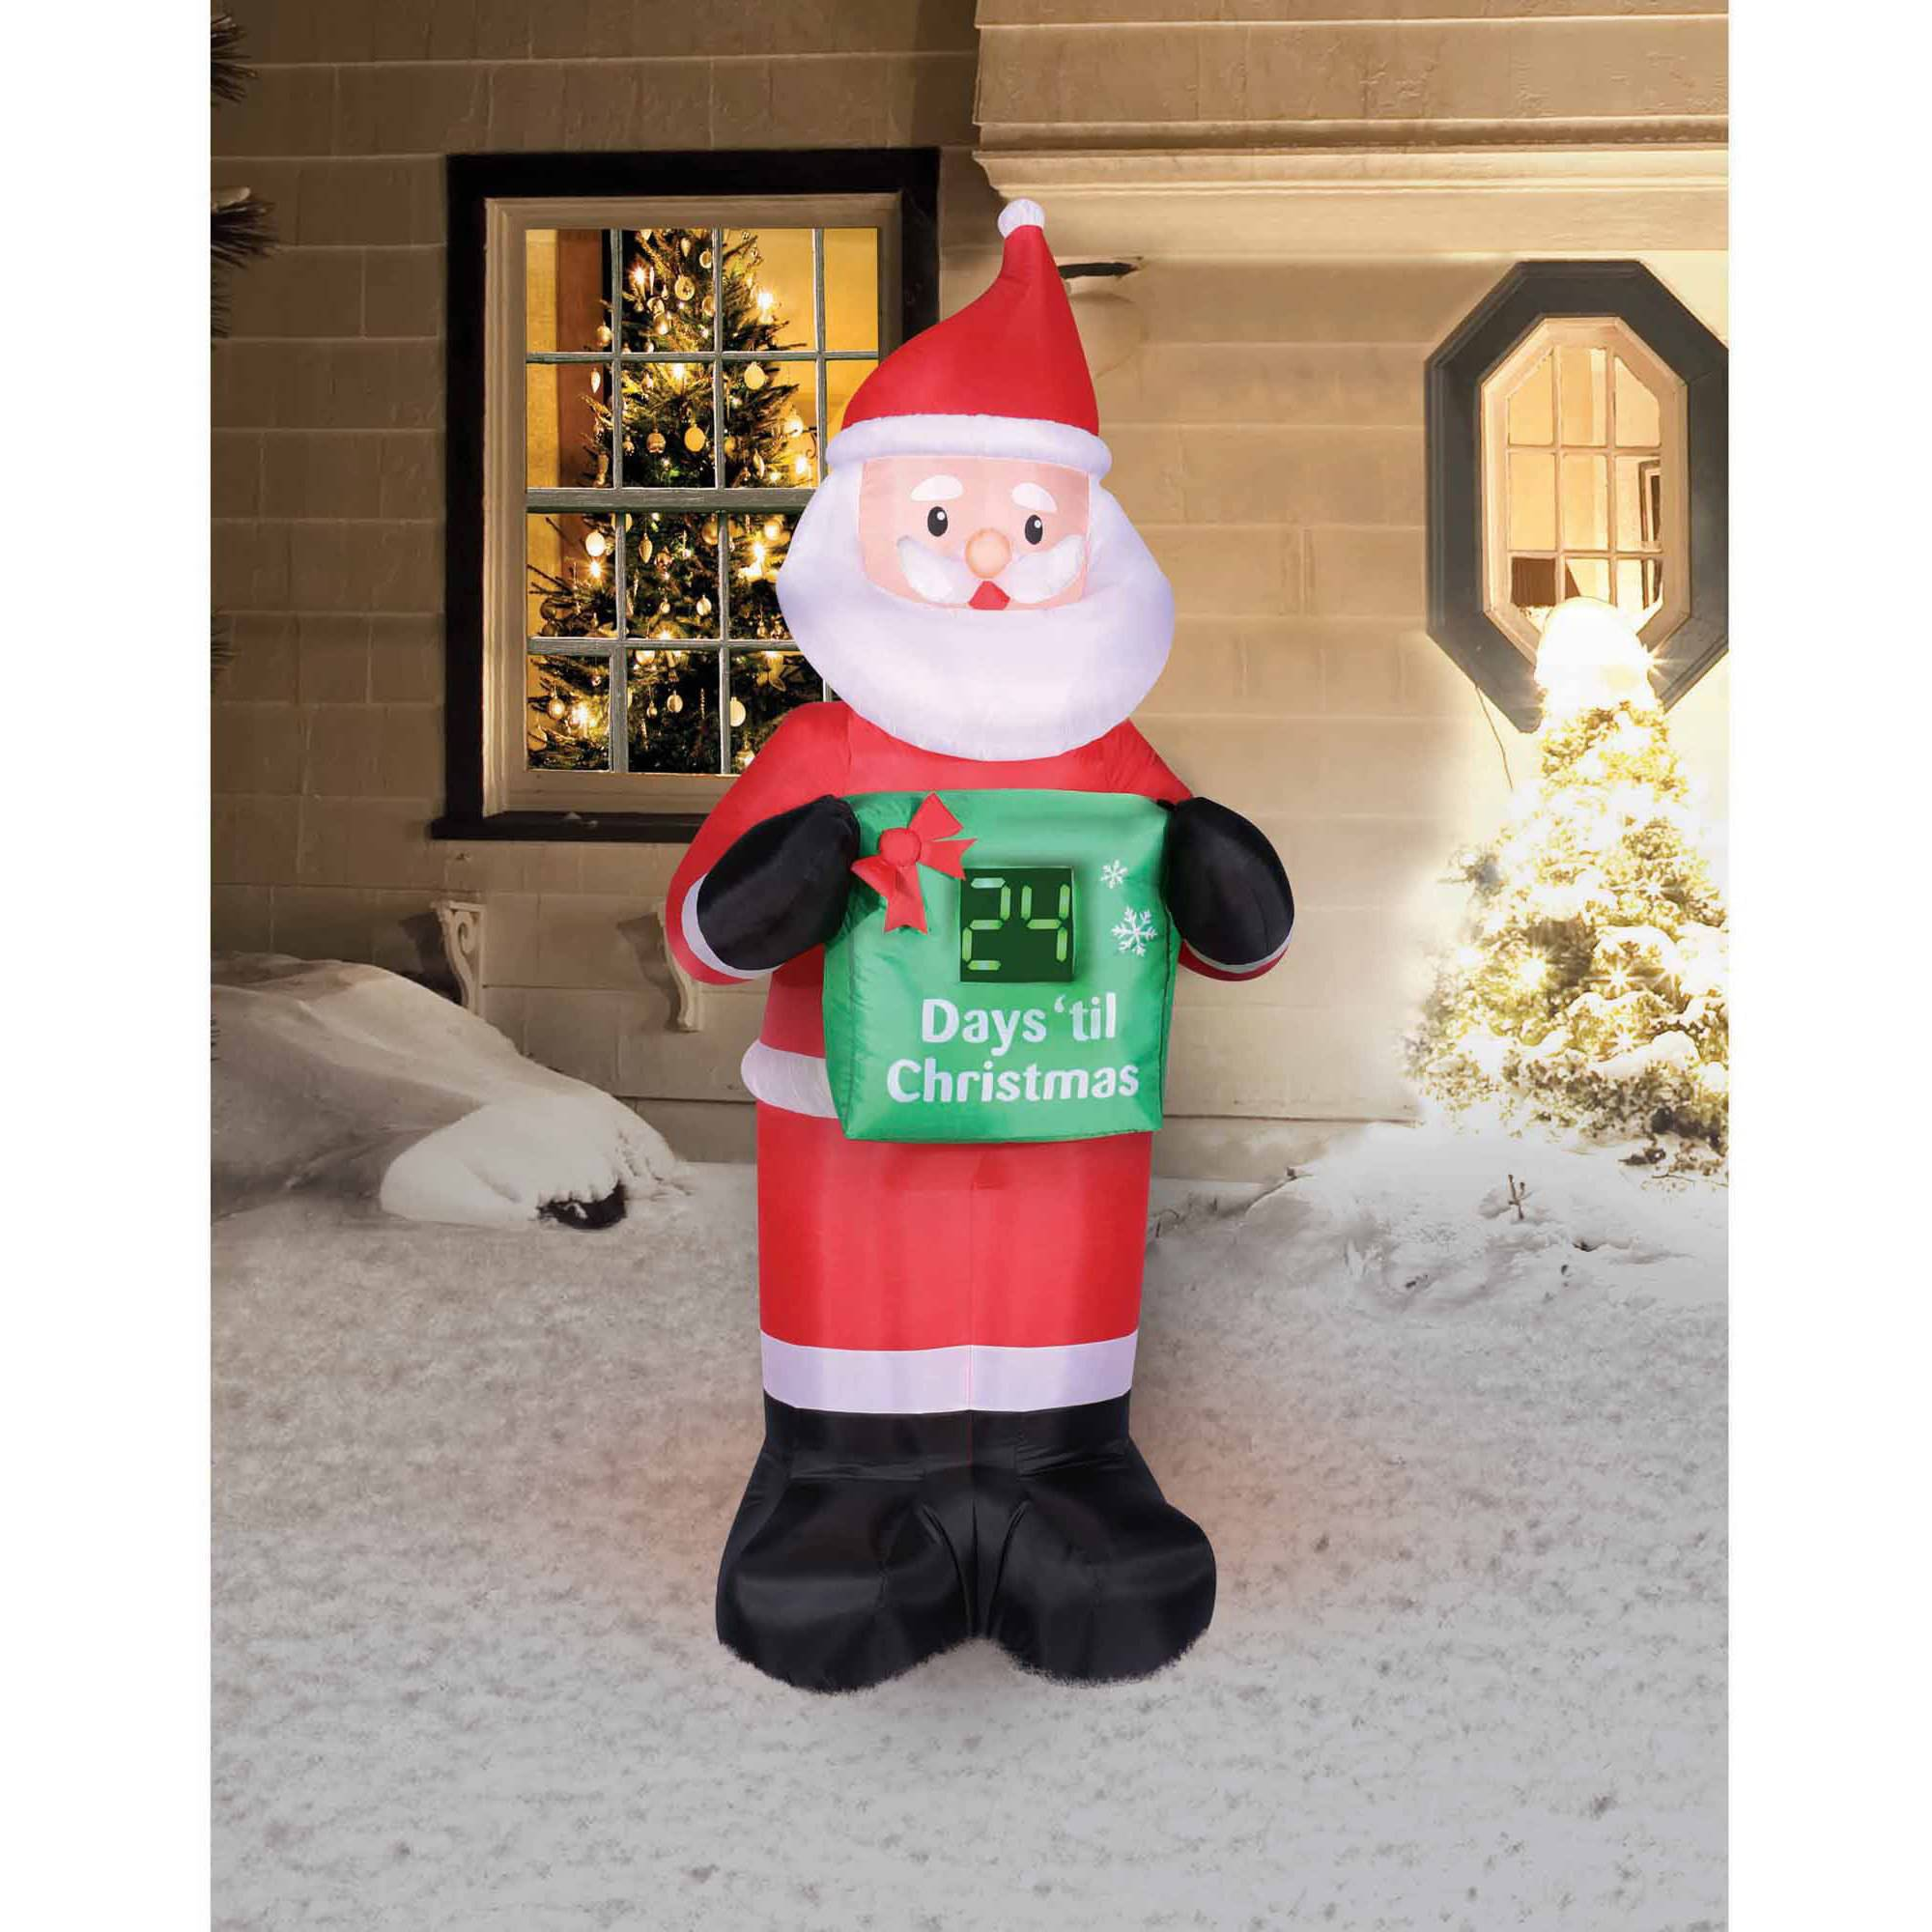 holiday time 7 countdown calendar santa christmas inflatable walmartcom - Walmart Outdoor Christmas Decorations